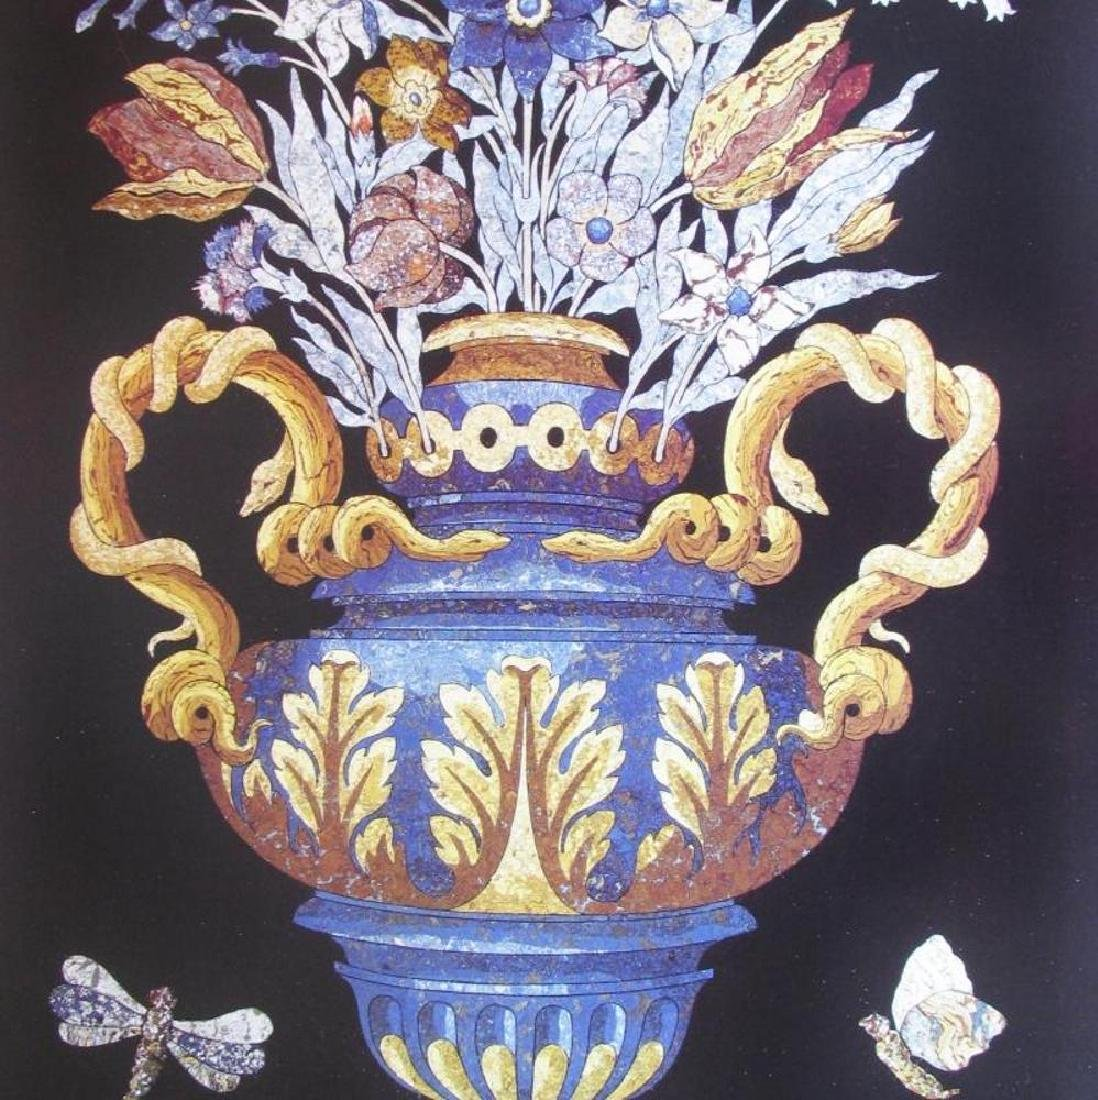 1996 Printed In Spain Vases After Vitruvius From Munich - 3